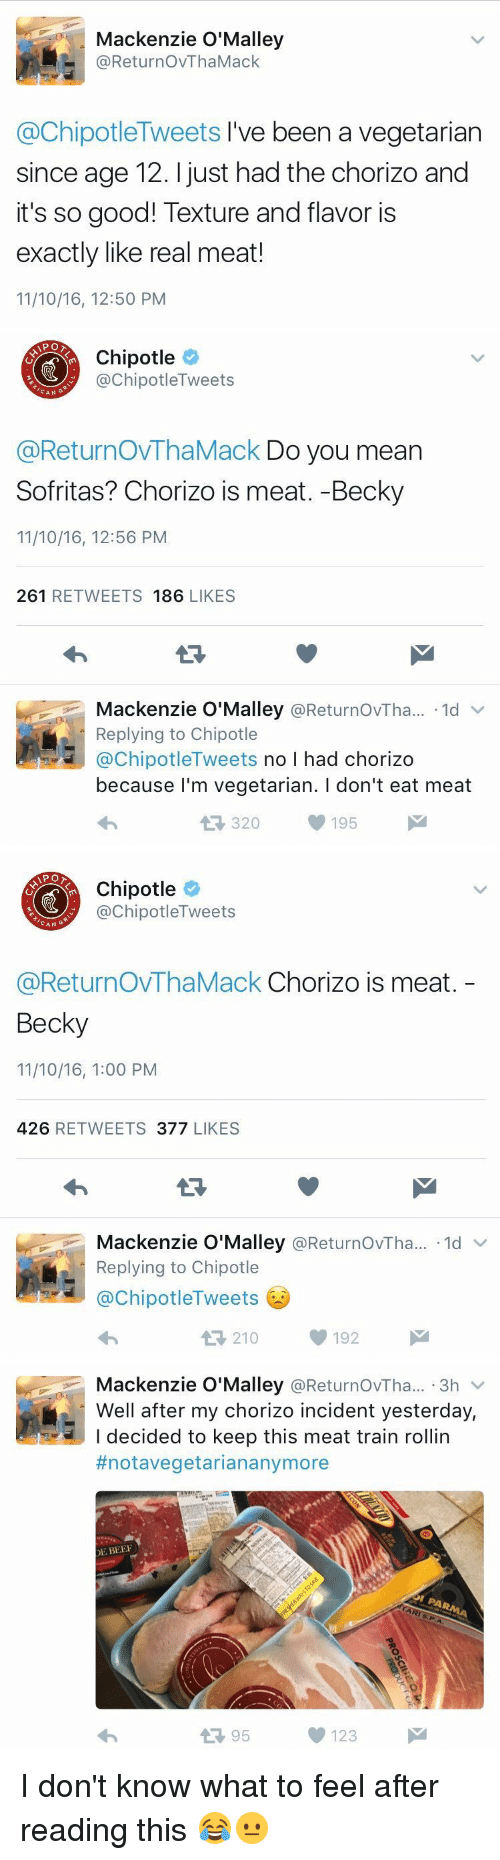 mackenzie: Mackenzie O'Malley  @Retur no VThaMack  @ChipotleTweets I've been a vegetarian  since age 12. just had the chorizo and  it's so good! Texture and flavor is  exactly like real meat!  11/10/16, 12:50 PM   APO  Chipotle  nipotle Tweets  CAN  @ReturnovThaMack Do you mean  Sofritas? Chorizo is meat. -Becky  11/10/16, 12:56 PM  261  RETWEETS  186  LIKES  Mackenzie O'Malley  @ReturnovTha... 1d v  Replying to Chipotle  @Chipotle  Tweets  no l had chorizo  because I'm vegetarian. l don't eat meat  195  320   Chipotle  ChipotleTweets  CAN  G  @ReturnOVThaMack Chorizo is meat  Becky  11/10/16, 1:00 PM  426  RETWEETS  377  LIKES  Mackenzie O'Malley  @ReturnovTha... ld  v  Replying to Chipotle  @Chipotle Tweets  t 210 192   Mackenzie O'Malley  @ReturnovTha... 3h  v  Well after my chorizo incident yesterday,  I decided to keep this meat train rollin  #notavegetarian anymore  DE BEEF  123  95 I don't know what to feel after reading this 😂😐